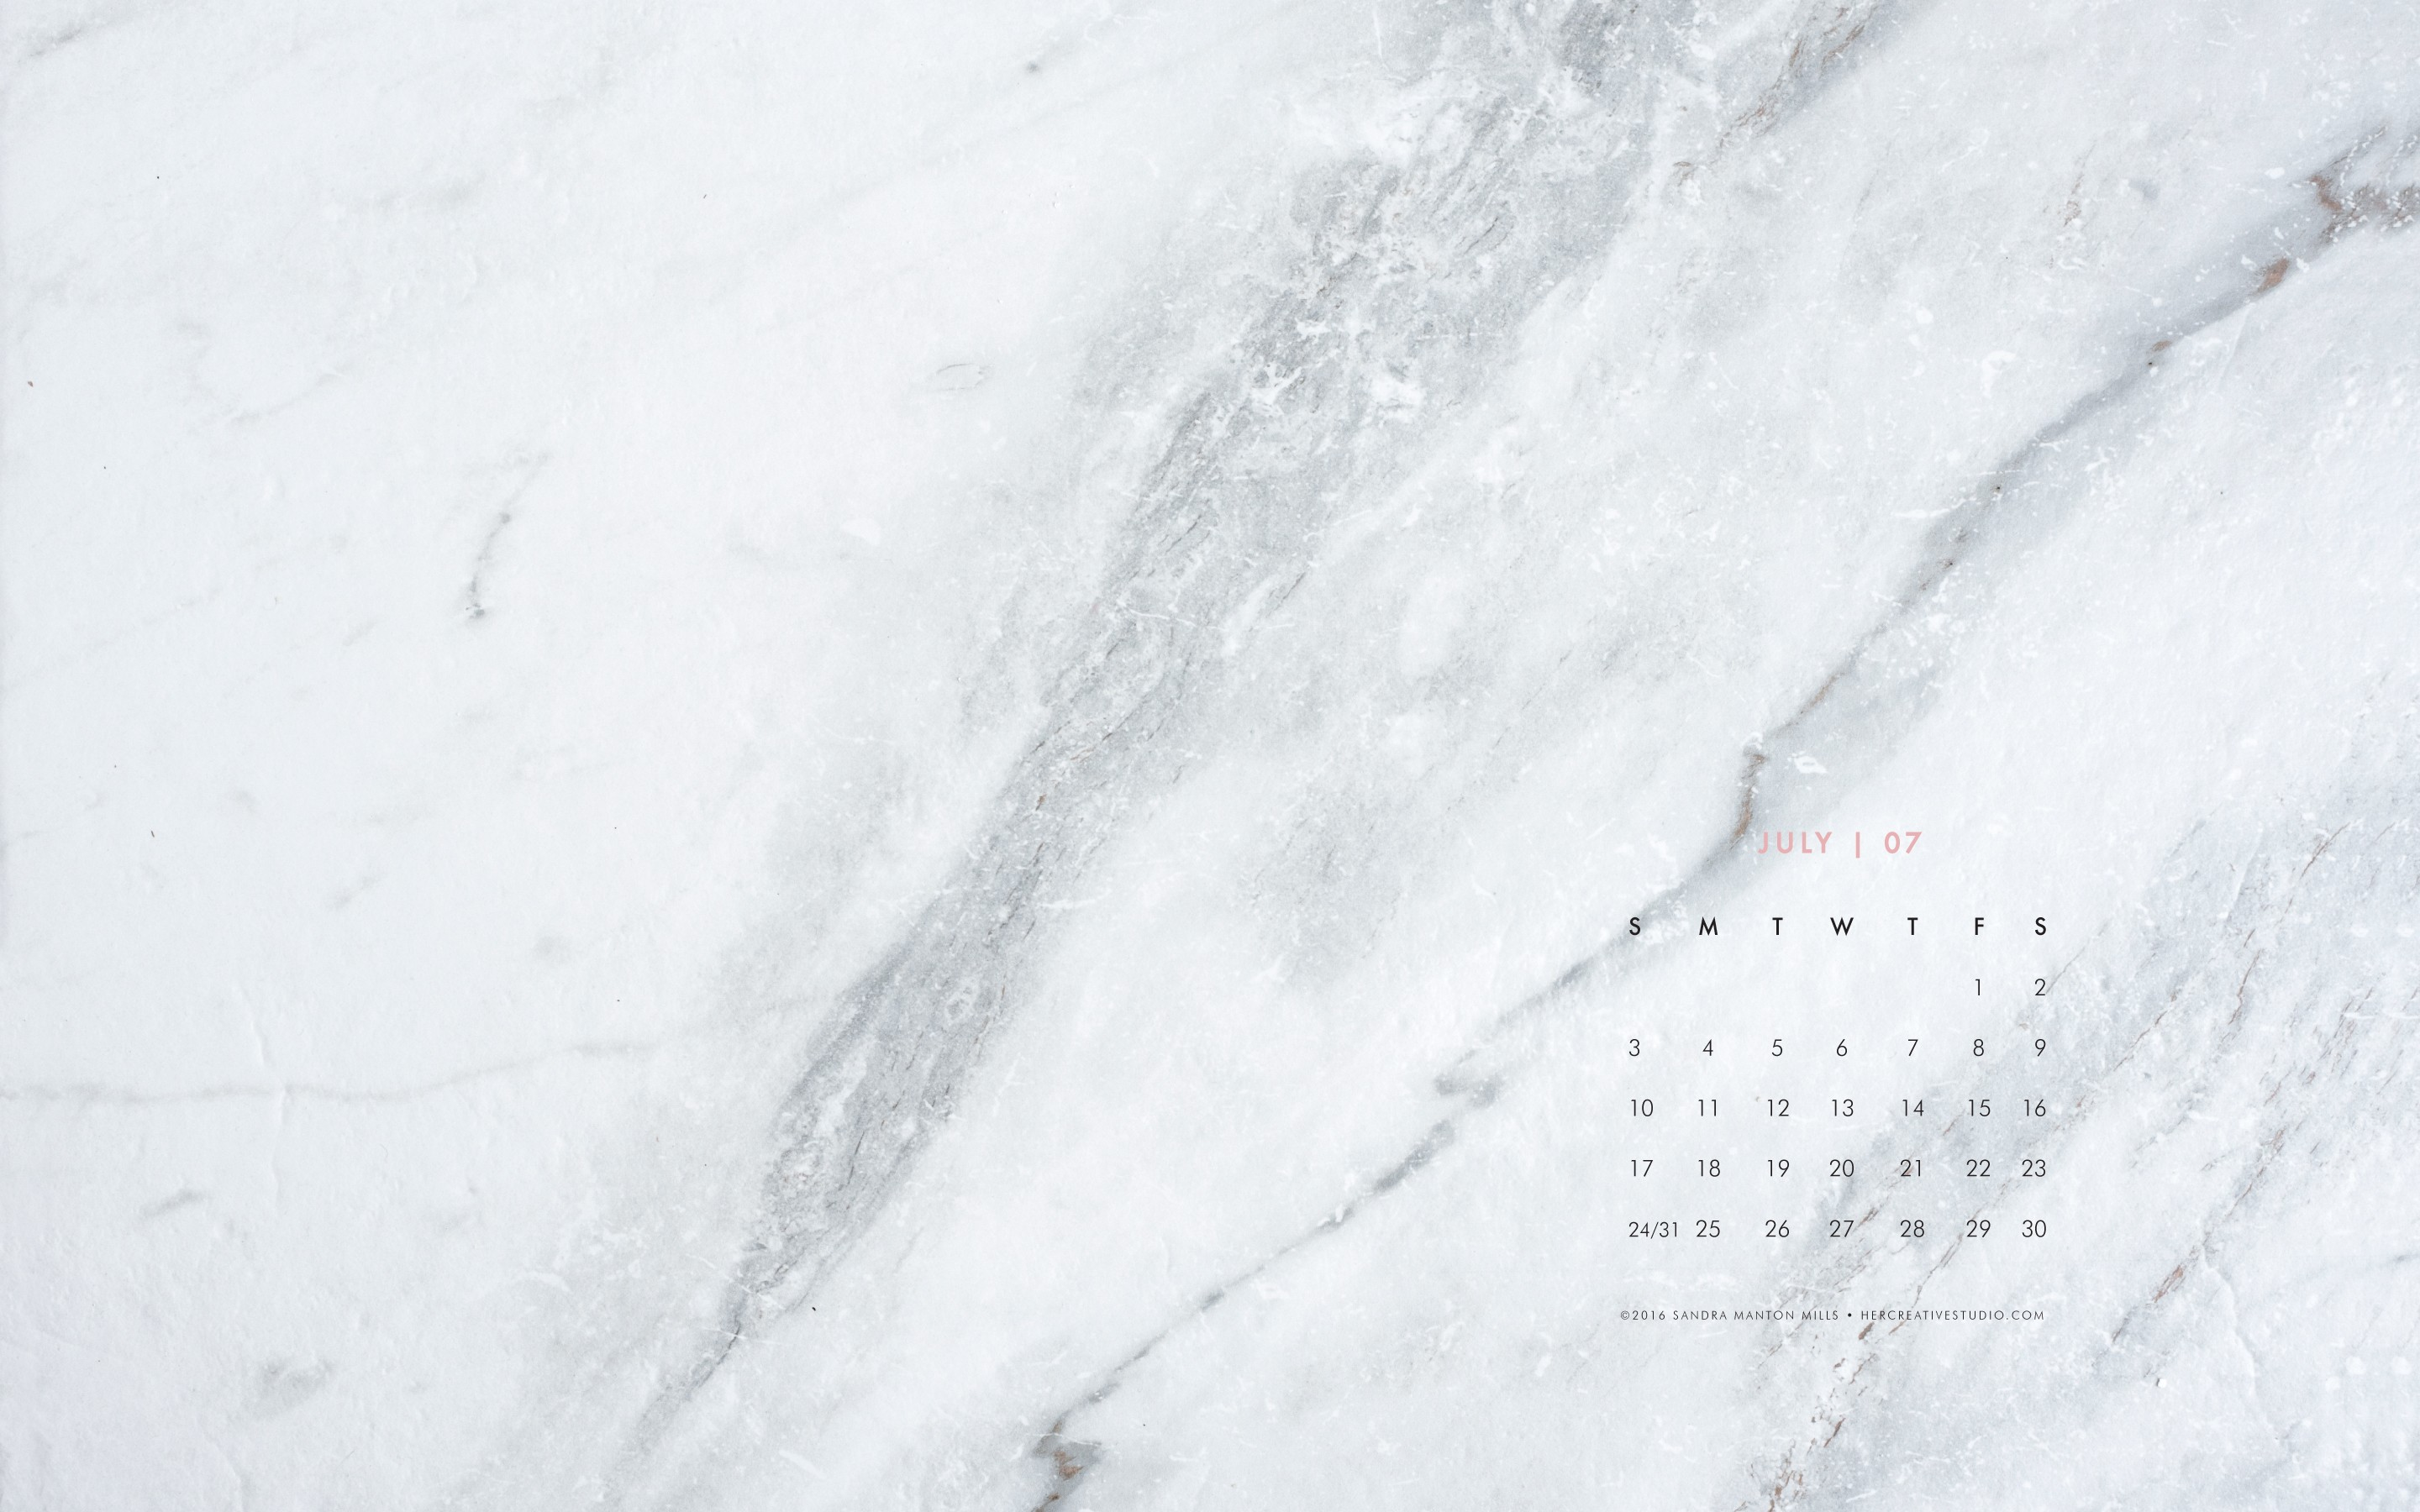 Marble Calendar Wallpaper : Marble wallpaper ·① download free awesome full hd